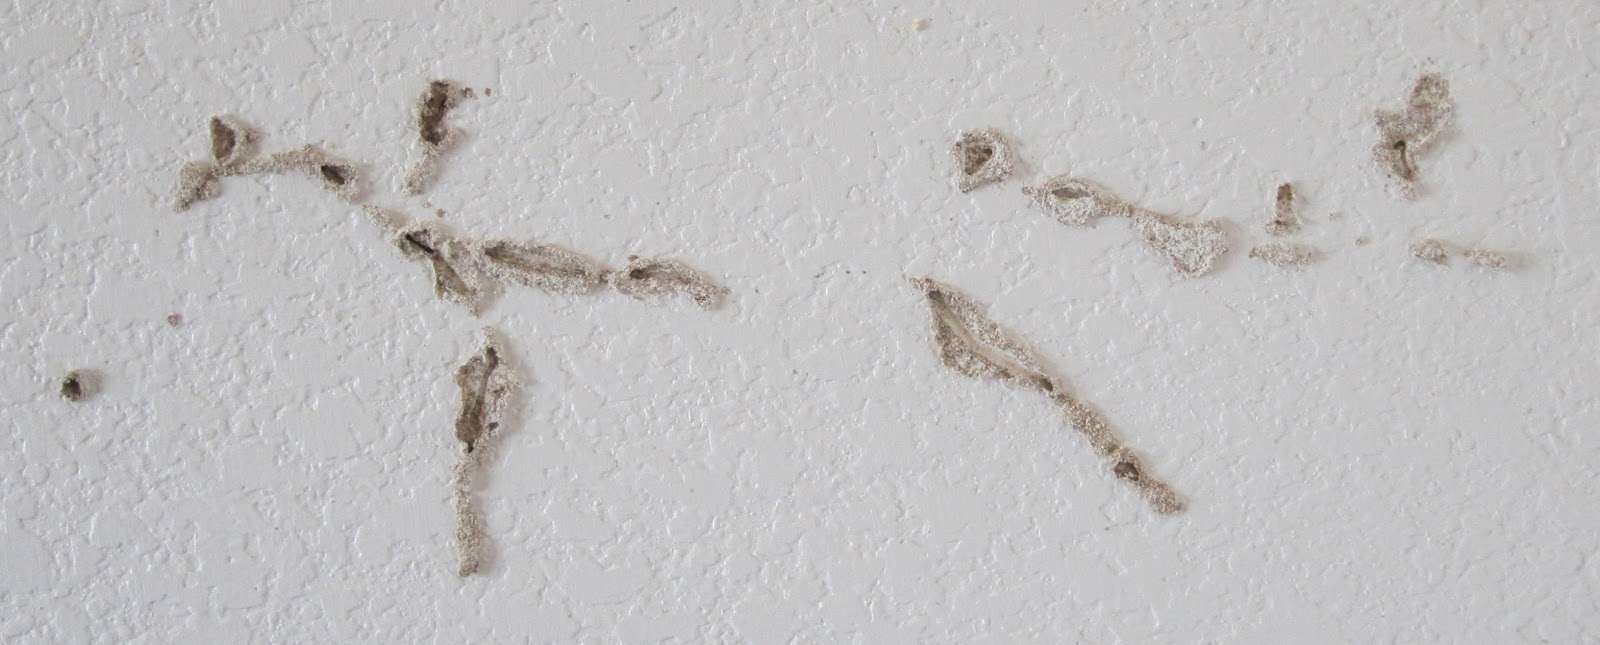 Termites Damage Ceiling Drywall : Suburban naturalist coming to terms with termites